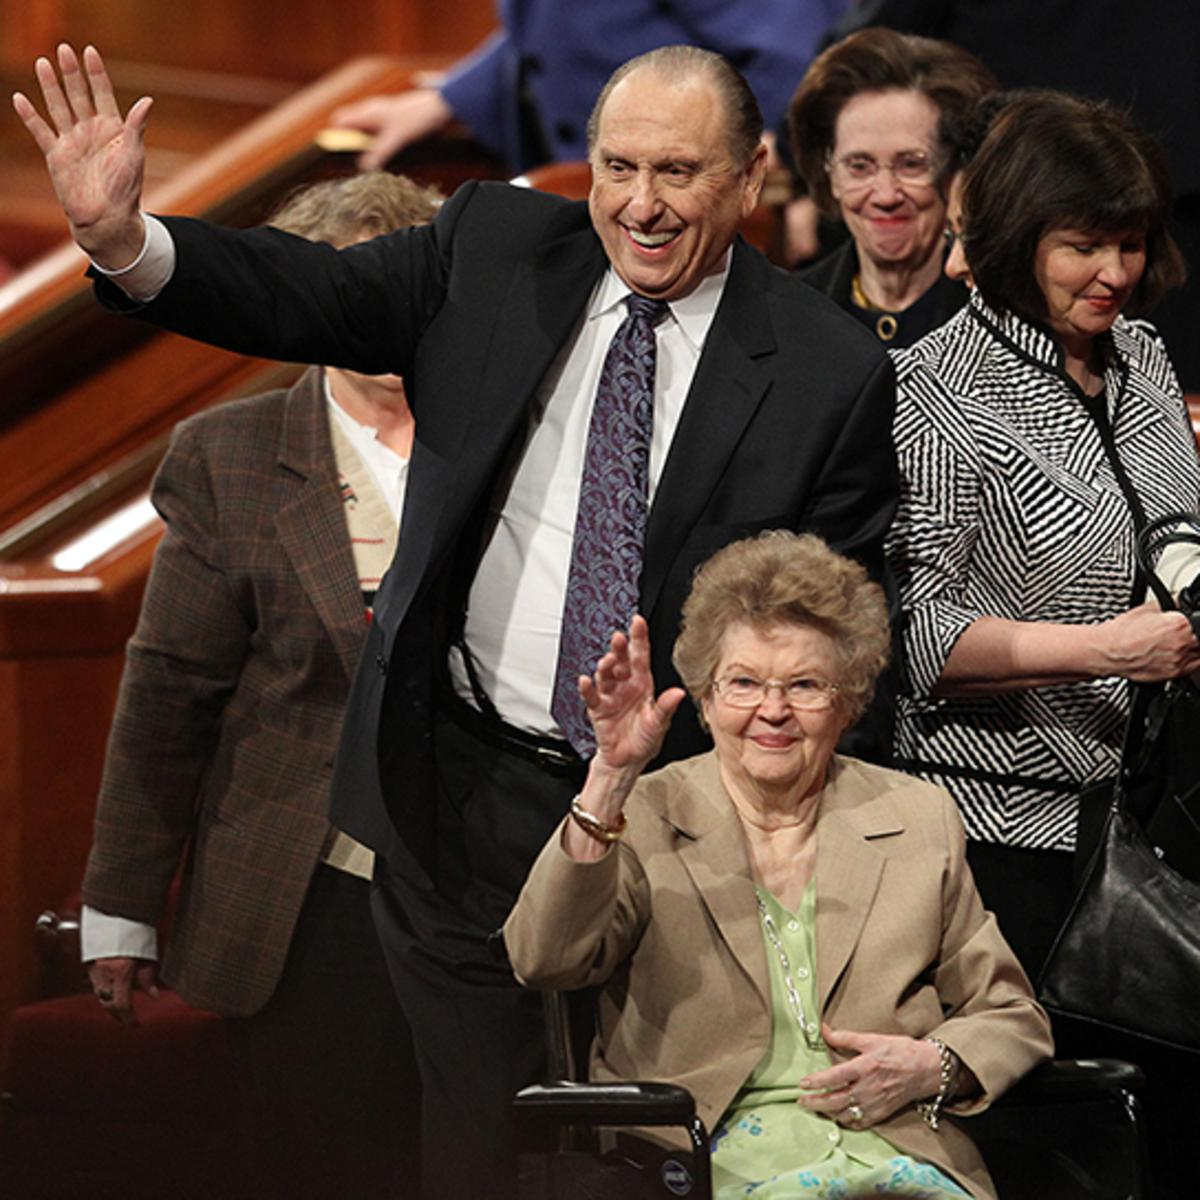 El Presidente Thomas S. Monson y su esposa, Frances, saludan a la multitud después de la 181ª Conferencia General Anual el Domingo, 3 de Abril de 2011, en Salt Lake City, Utah. Foto de Tom Smart, Deseret News.